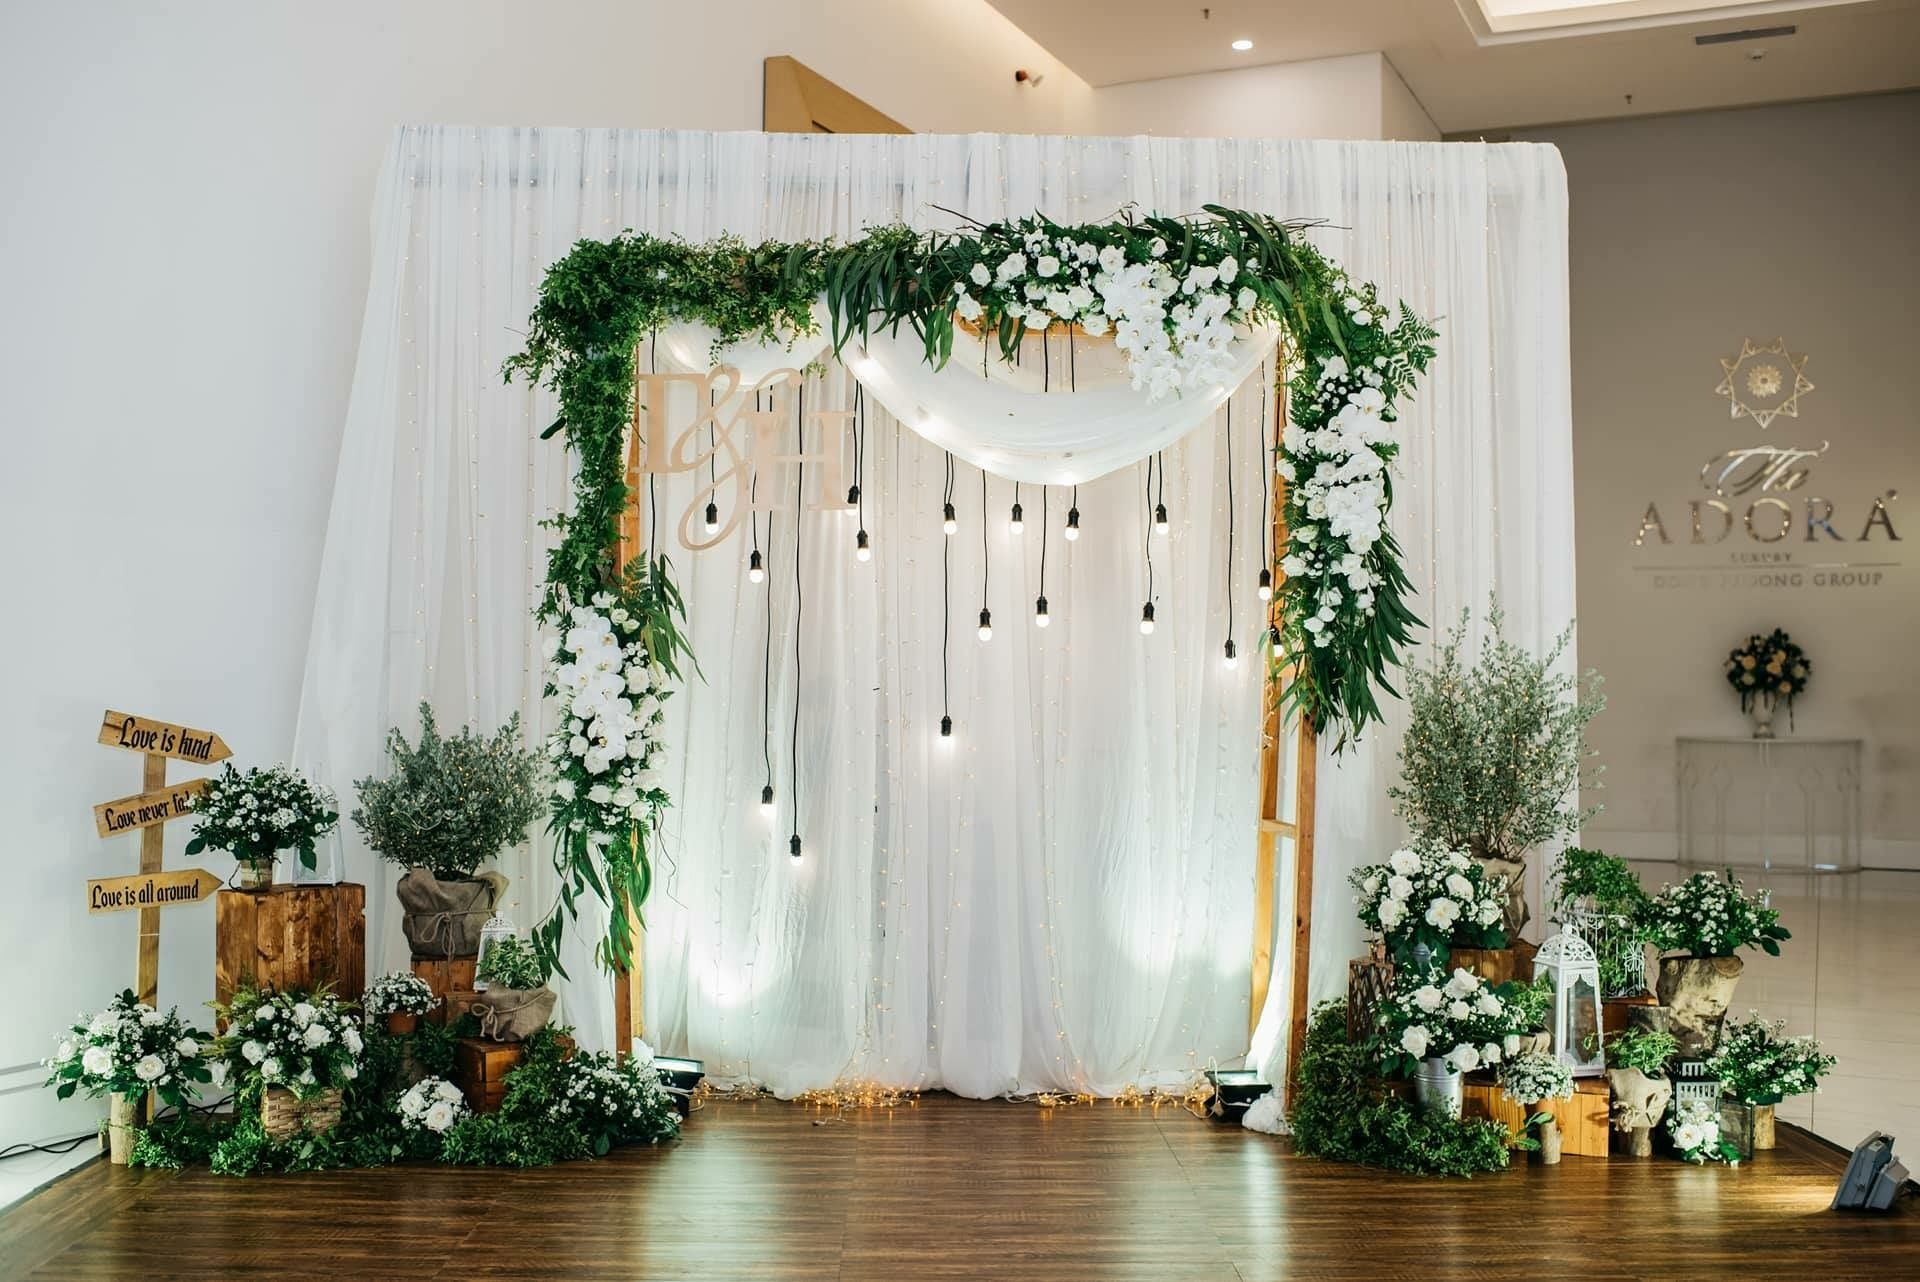 Pin oleh Quynhu Nguyen di Wedding Backdrop  Wedding decorations Rustic wedding backdrops dan